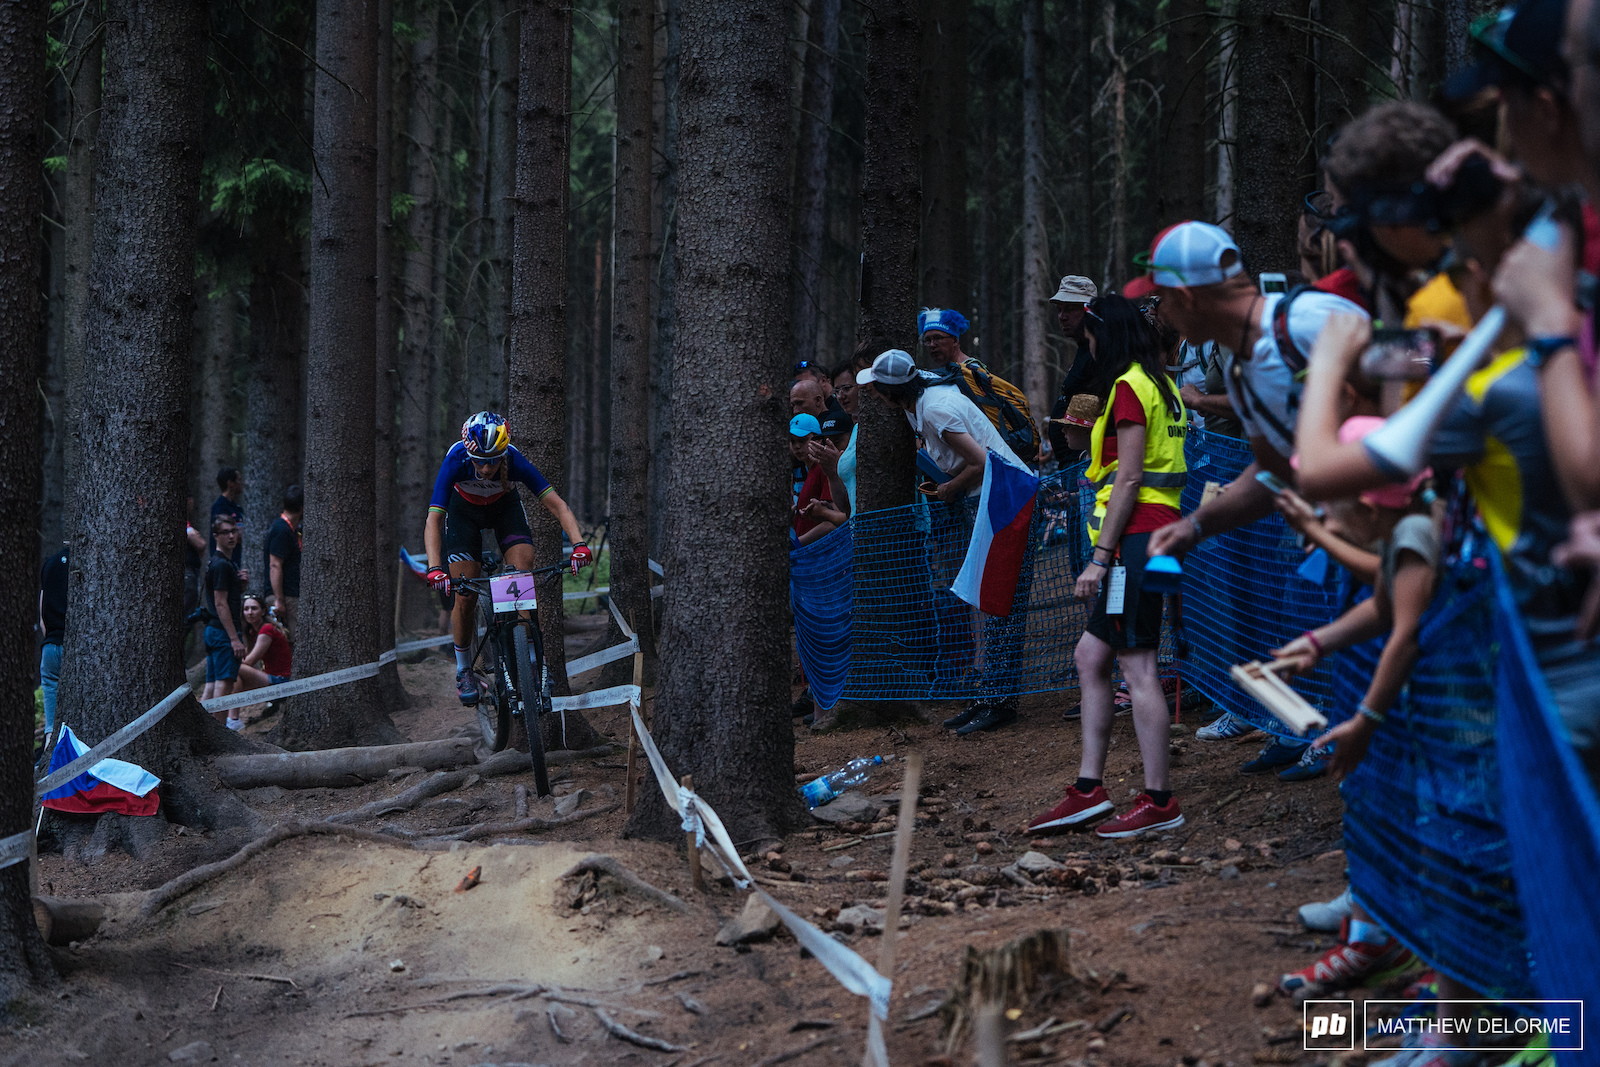 Pauline Ferrand Prevot was smooth and consistent on her way to third.